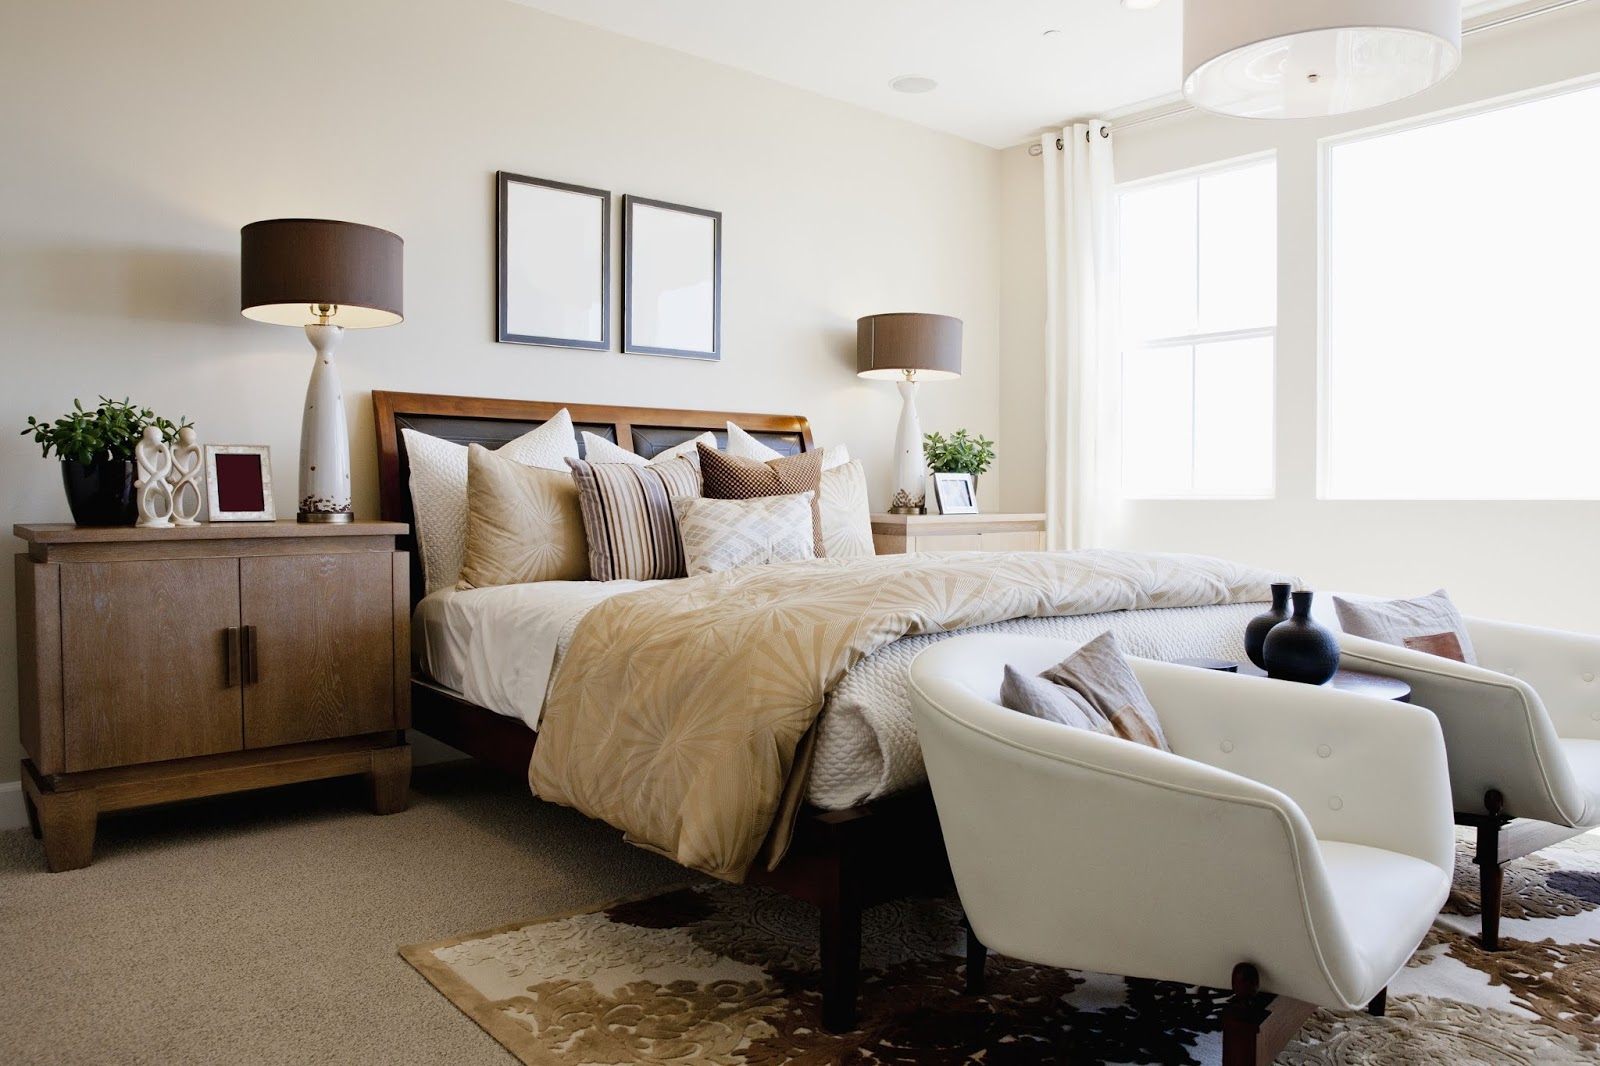 Bedroom Decoration and Bed Sheet Ideas 2020